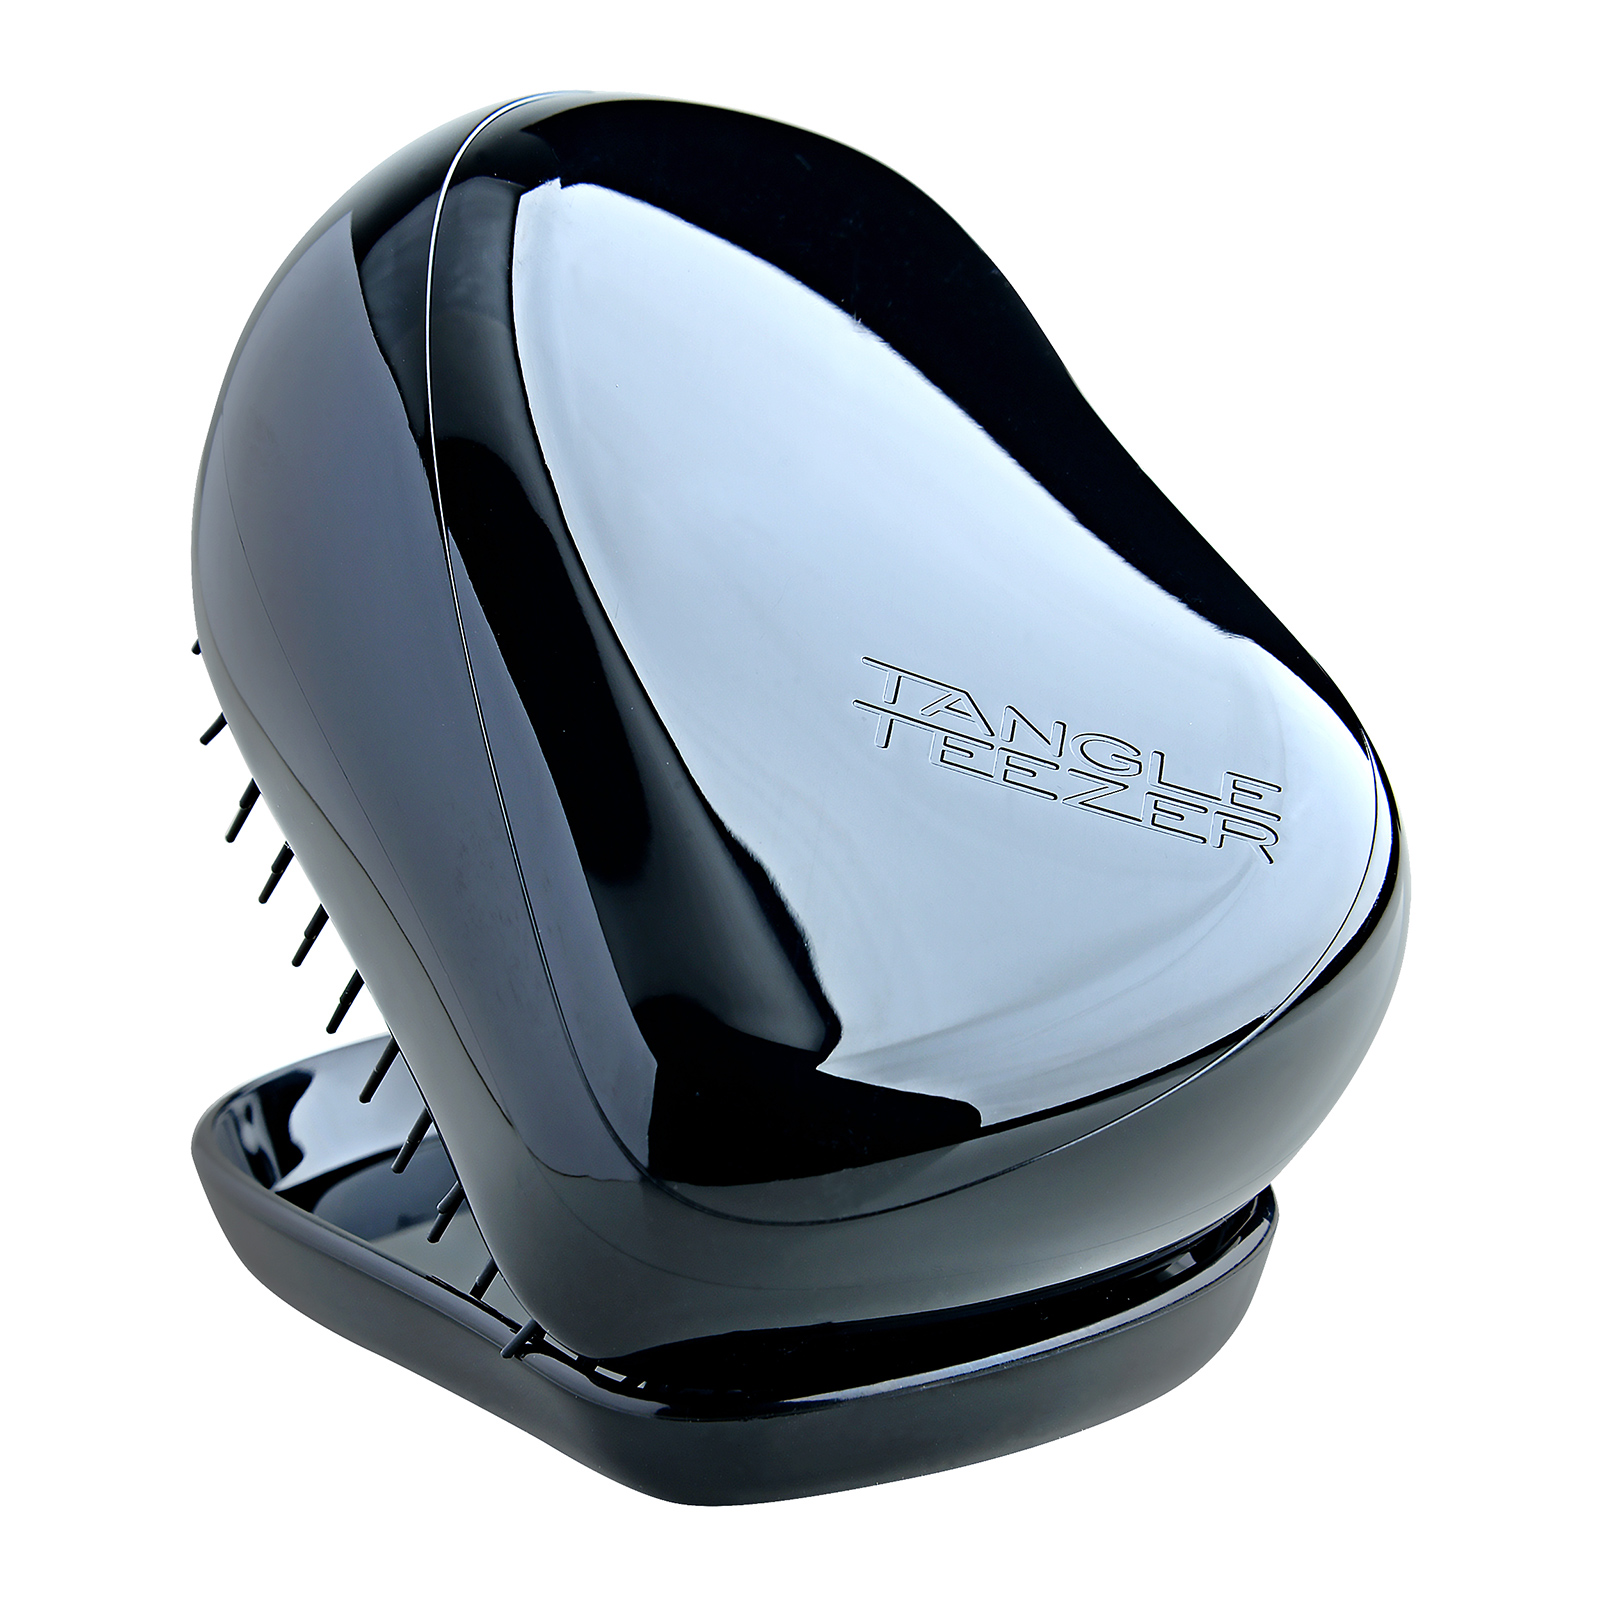 Tangle Teezer Compact Styler  The Instant Detangling Hairbrush Rock Star Black, 1pc, from Cosme-De.com